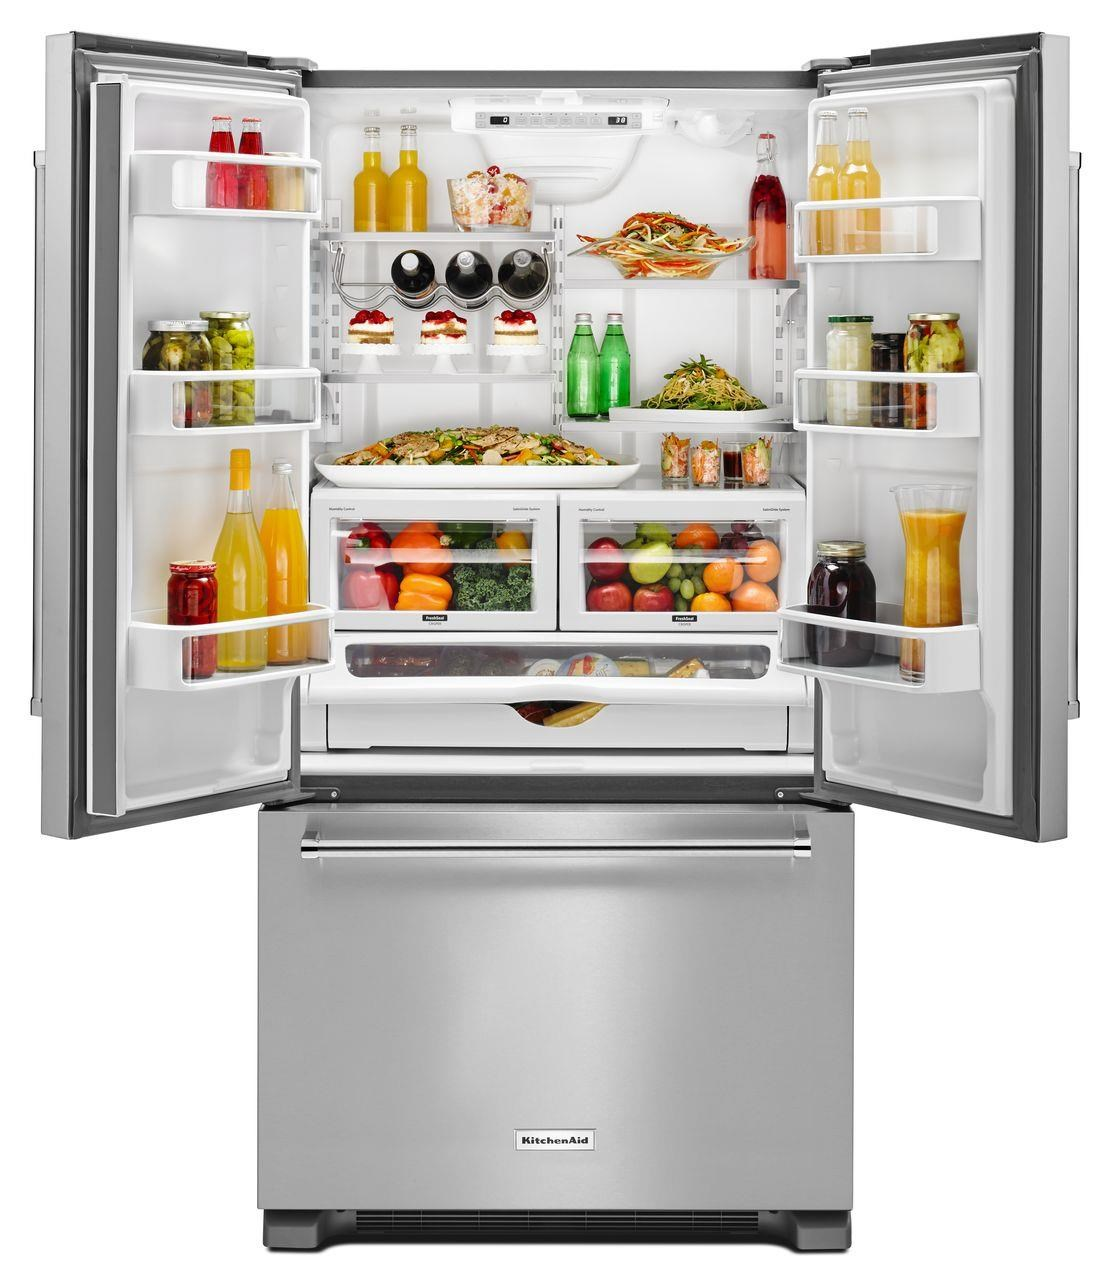 ... KitchenAid KitchenAid French Door Refrigerators22 Cu. Ft. Counter Depth  French Door Fridge ...